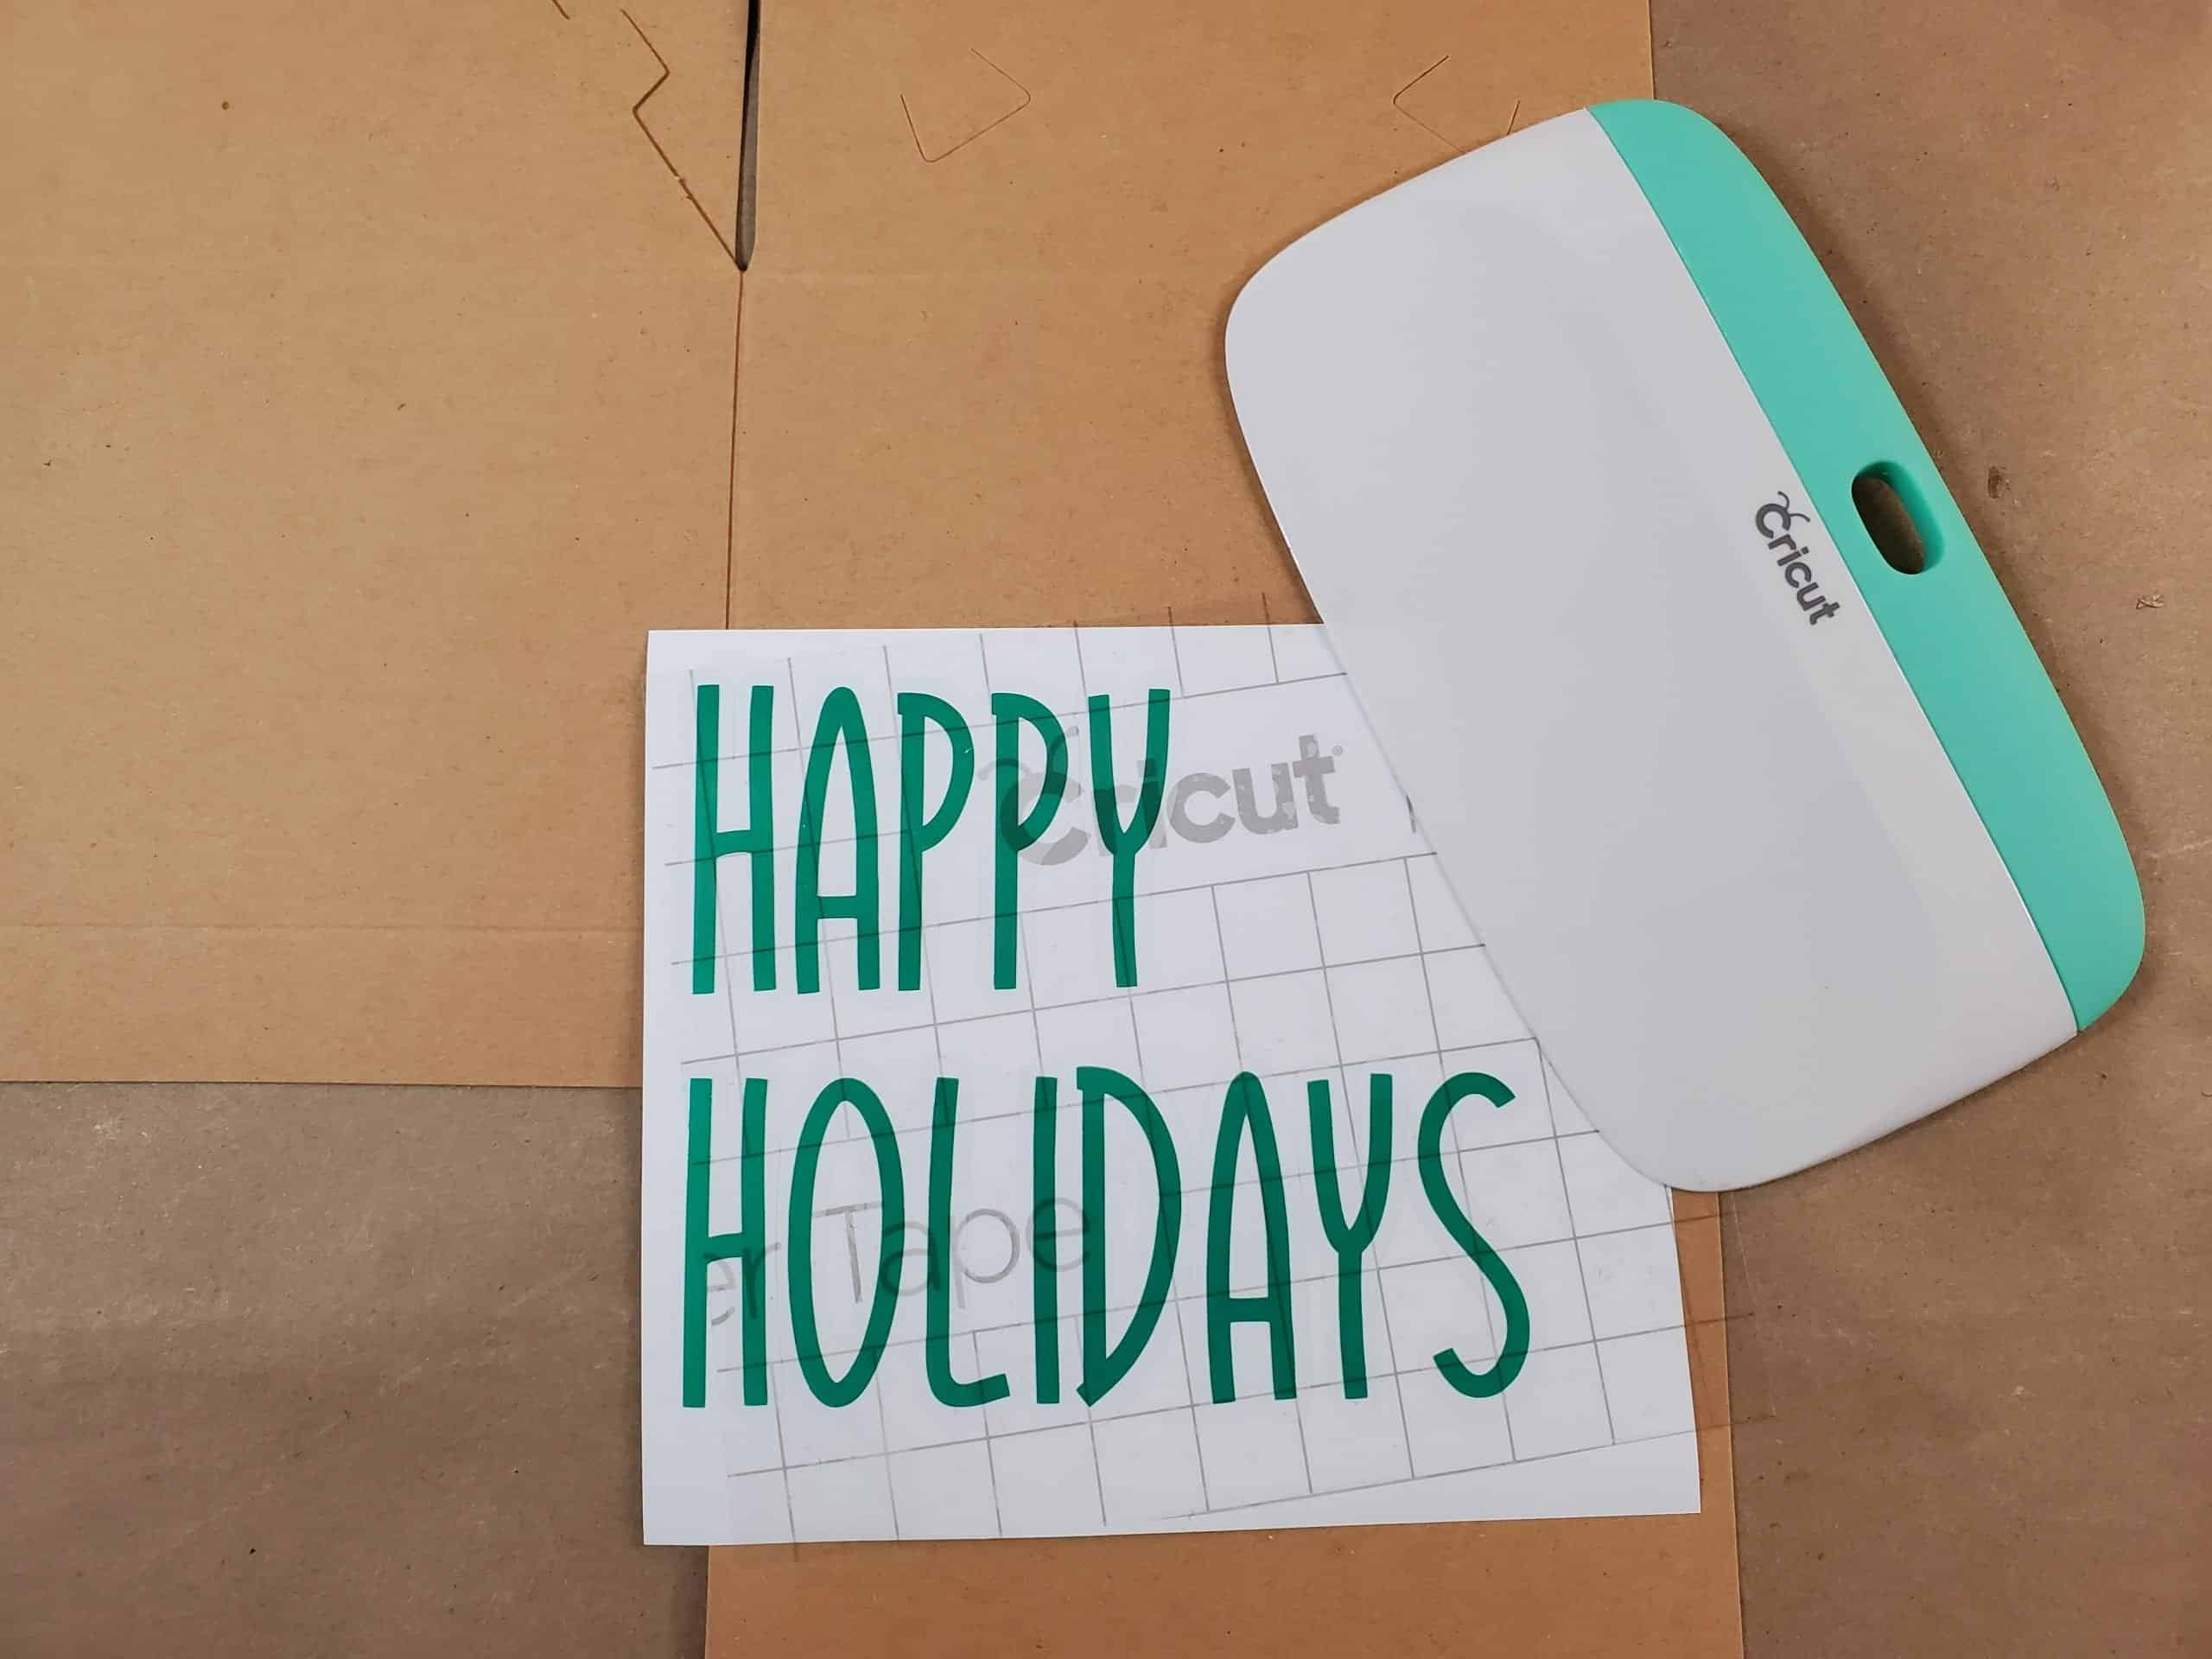 Happy Holidays Lettering Ready to be Transferred